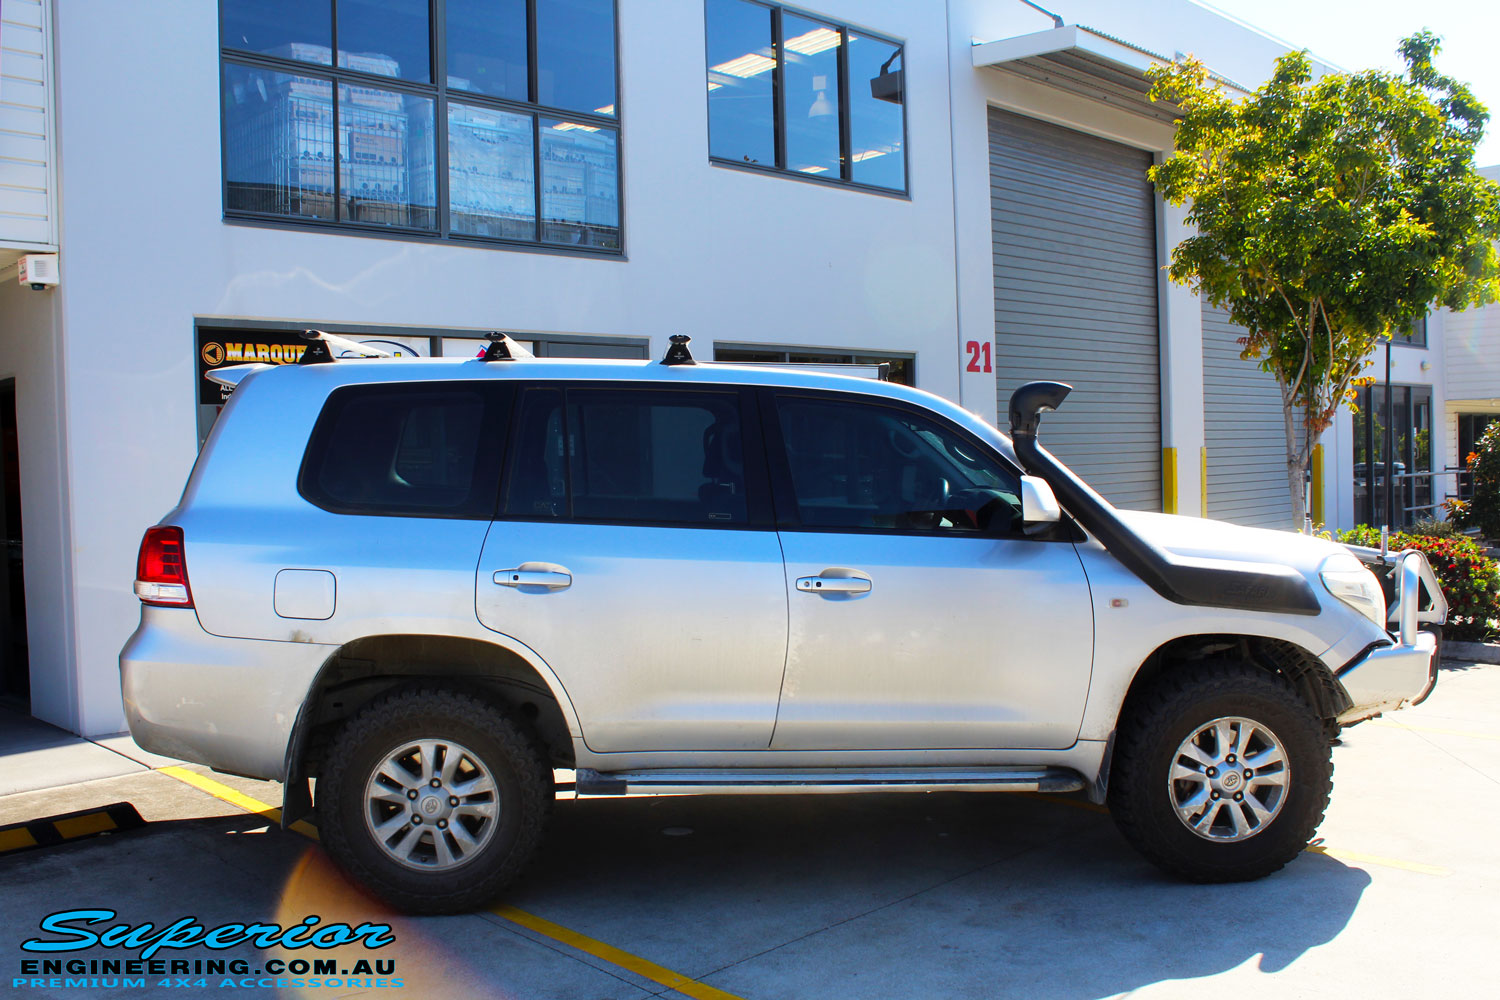 """Right side view of a Silver Toyota 200 Series Landcruiser after fitment of a Superior Remote Reservoir 2"""" Inch Lift Kit"""